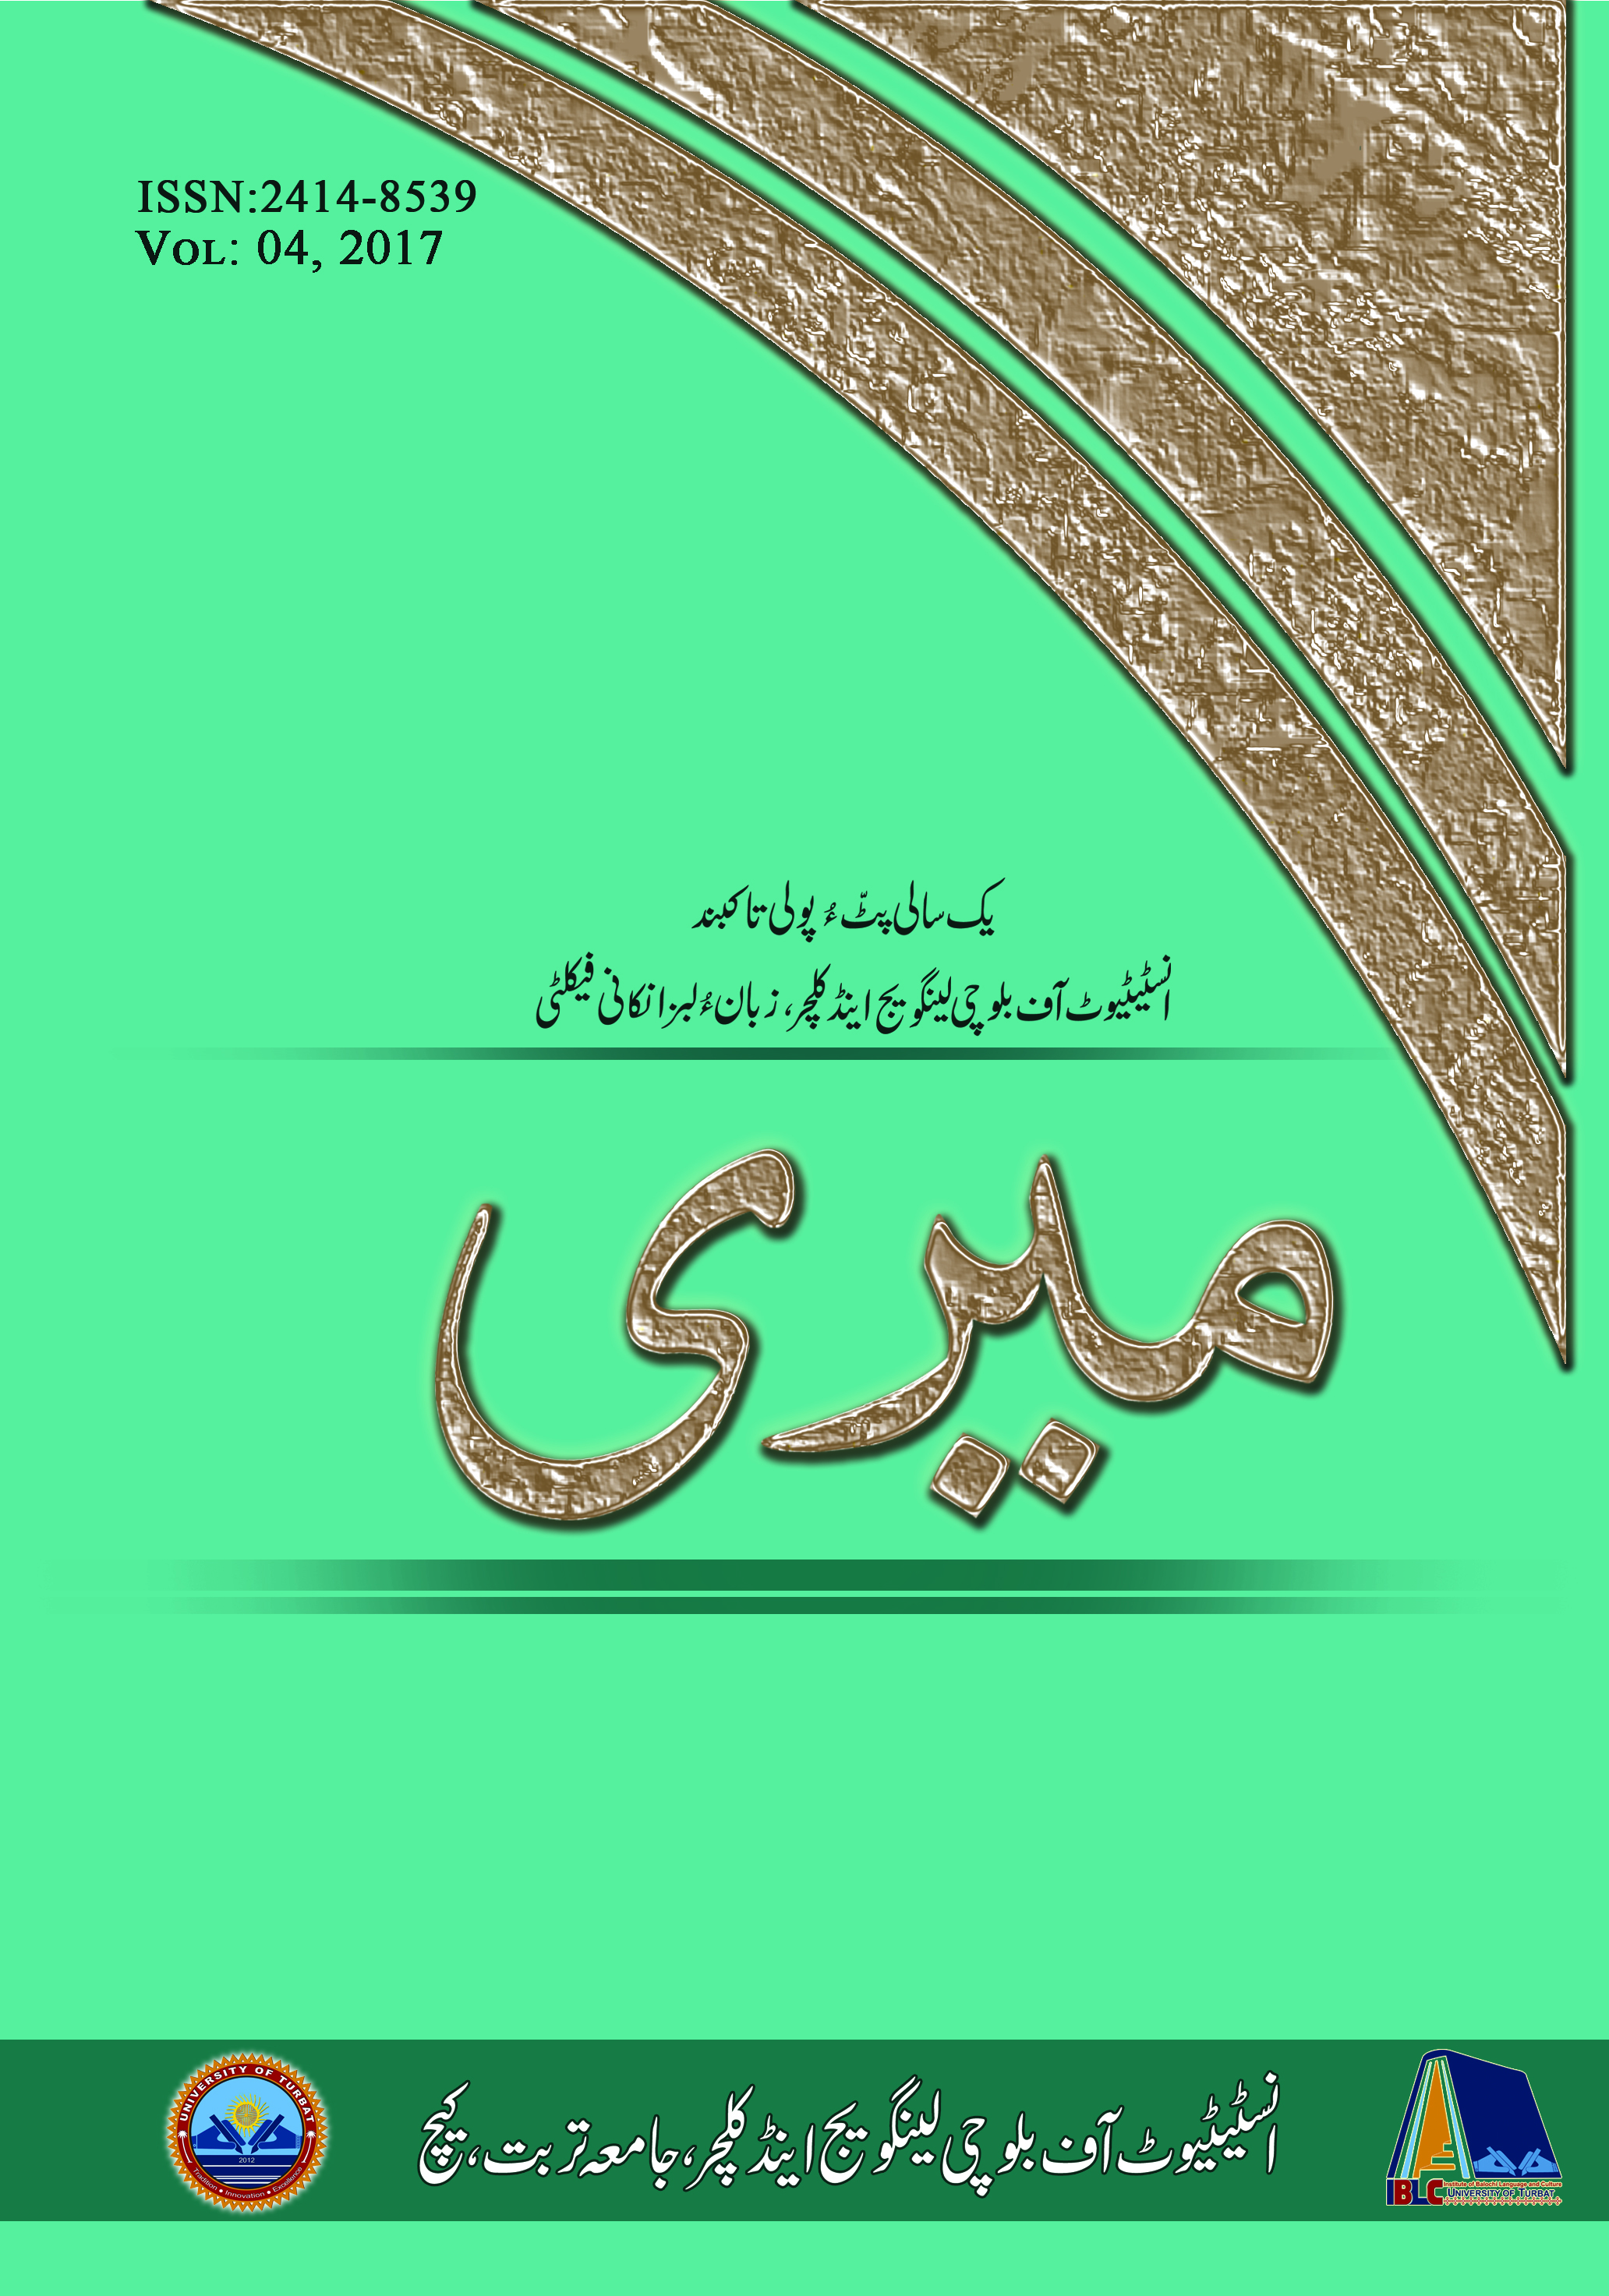 Annual Balochi Journal - Meeri 2017 (Balochi)